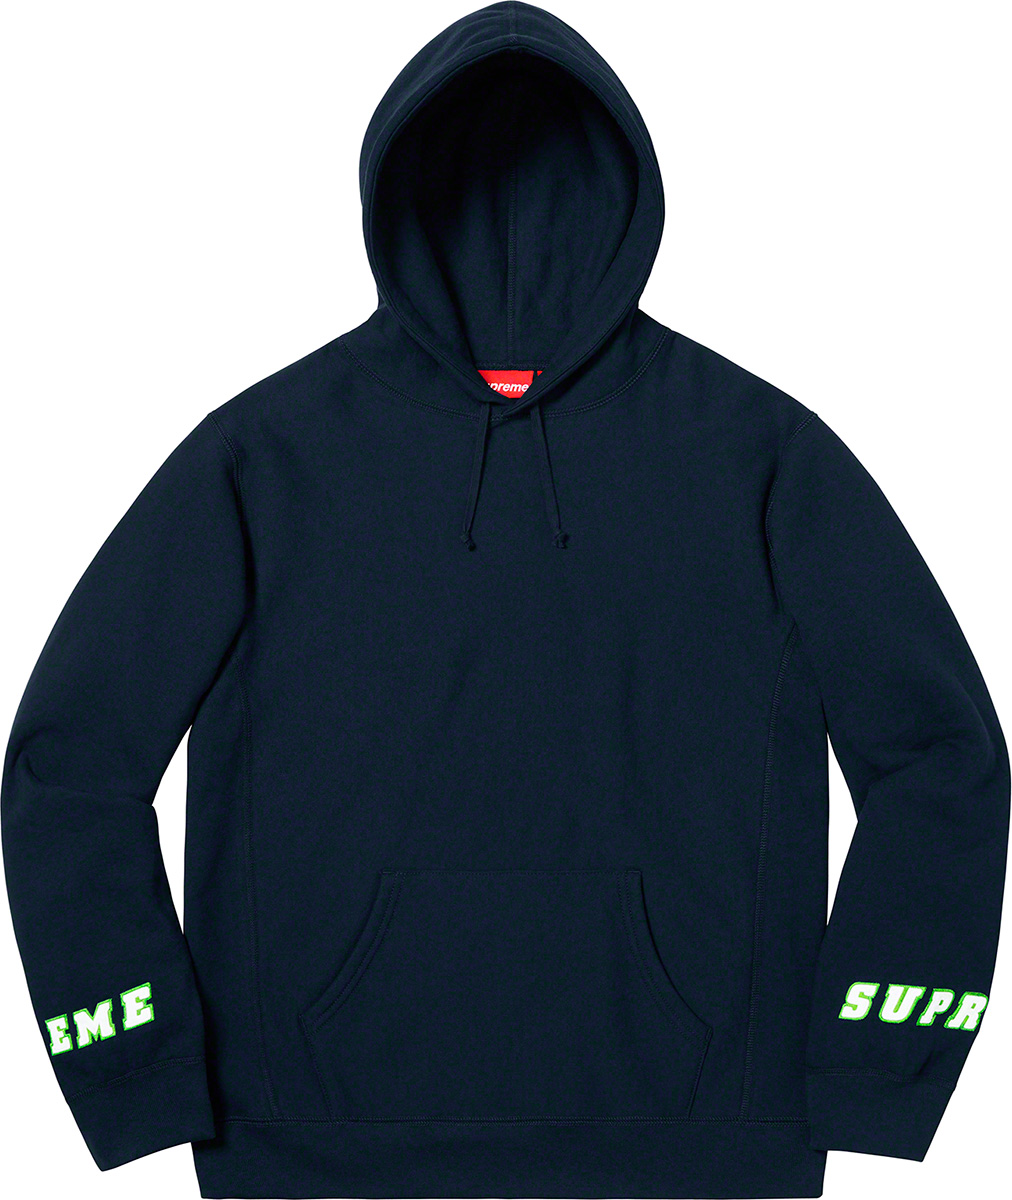 supreme-19ss-spring-summer-wrist-logo-hooded-sweatshirt